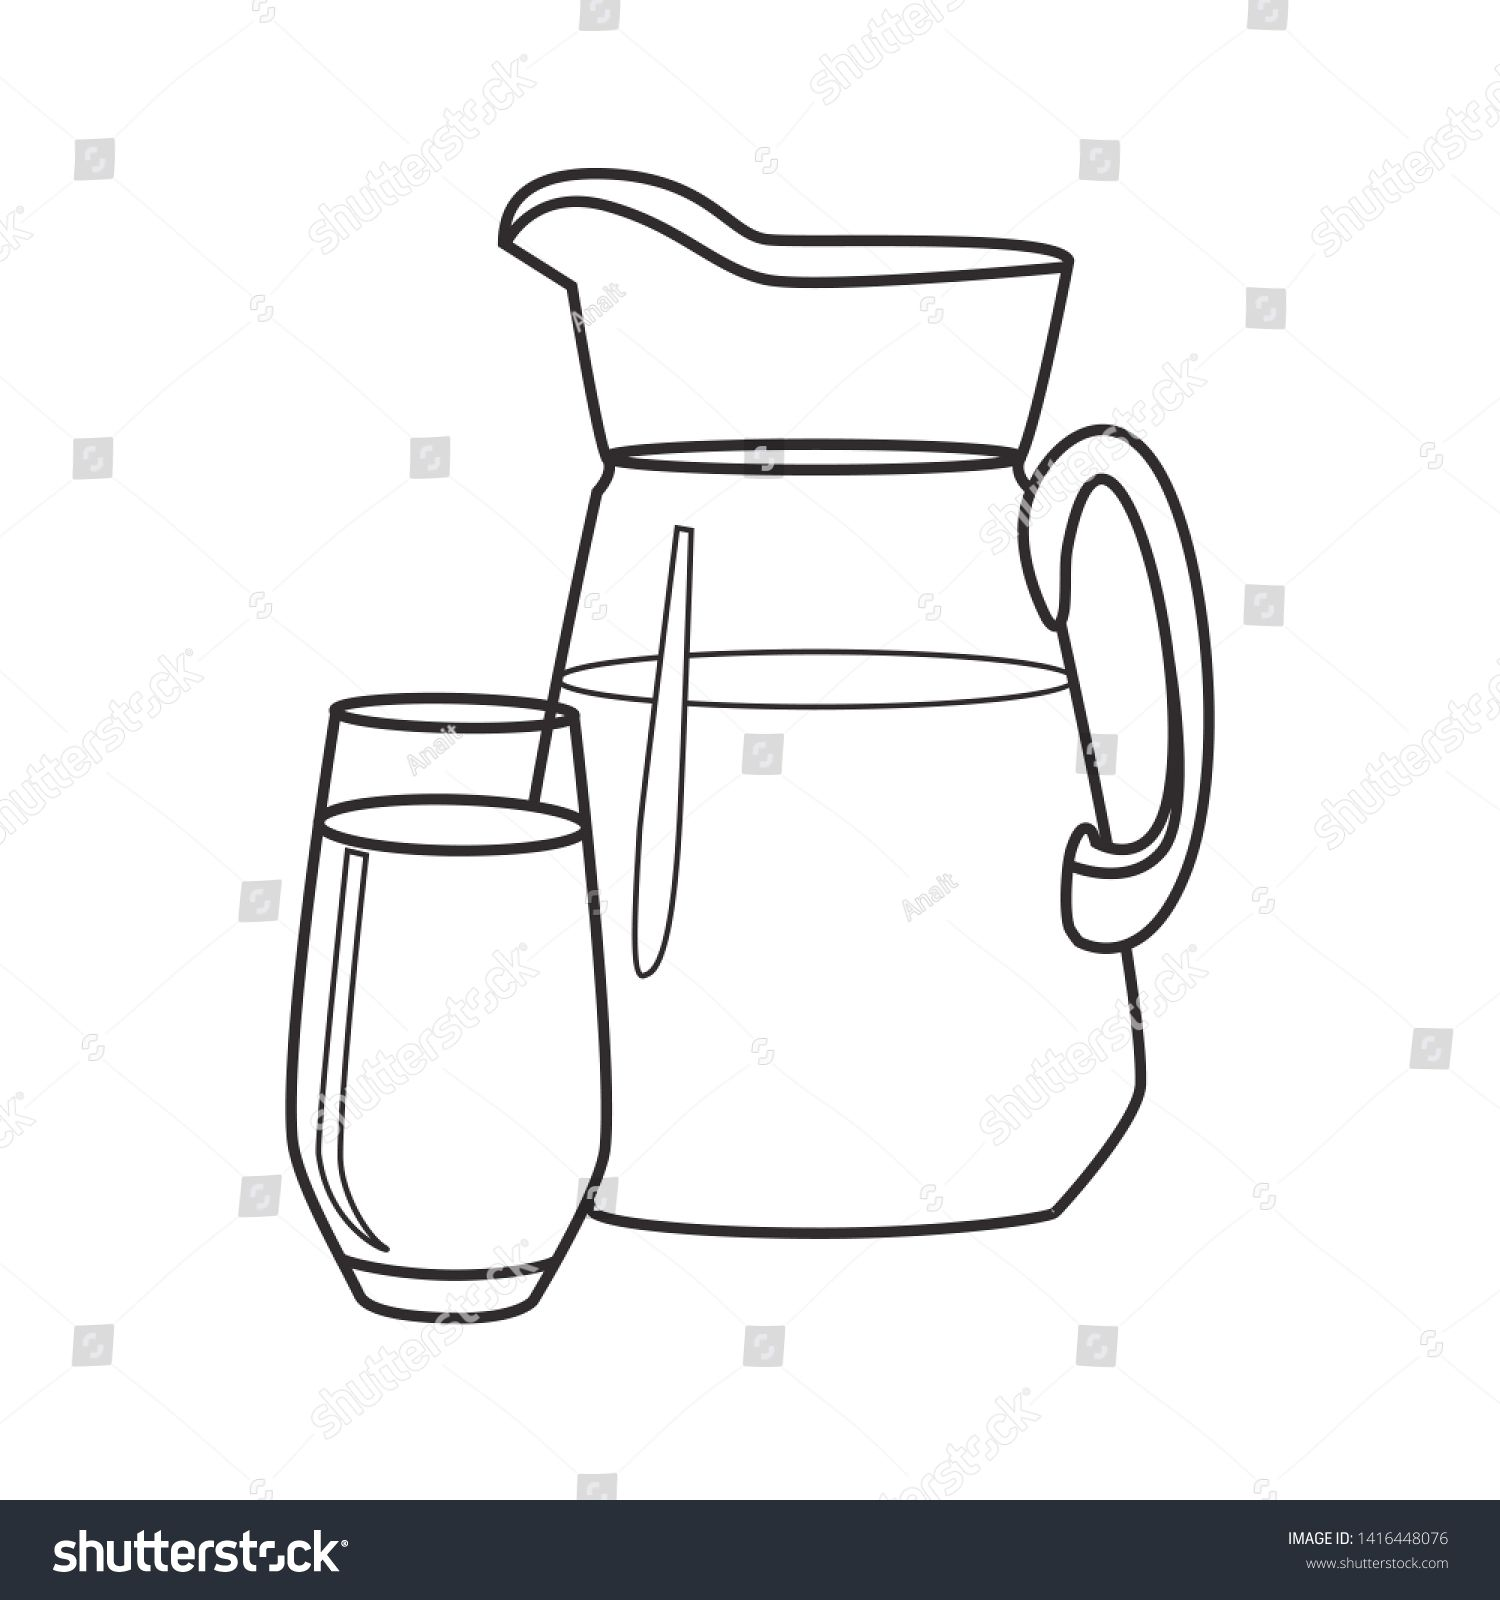 A Jug Of Water Or Milk Decanter With A Glass Of Liquid Linear Icon N Ad Ad Milk Decanter Jug Water Decanter Jugs Glass